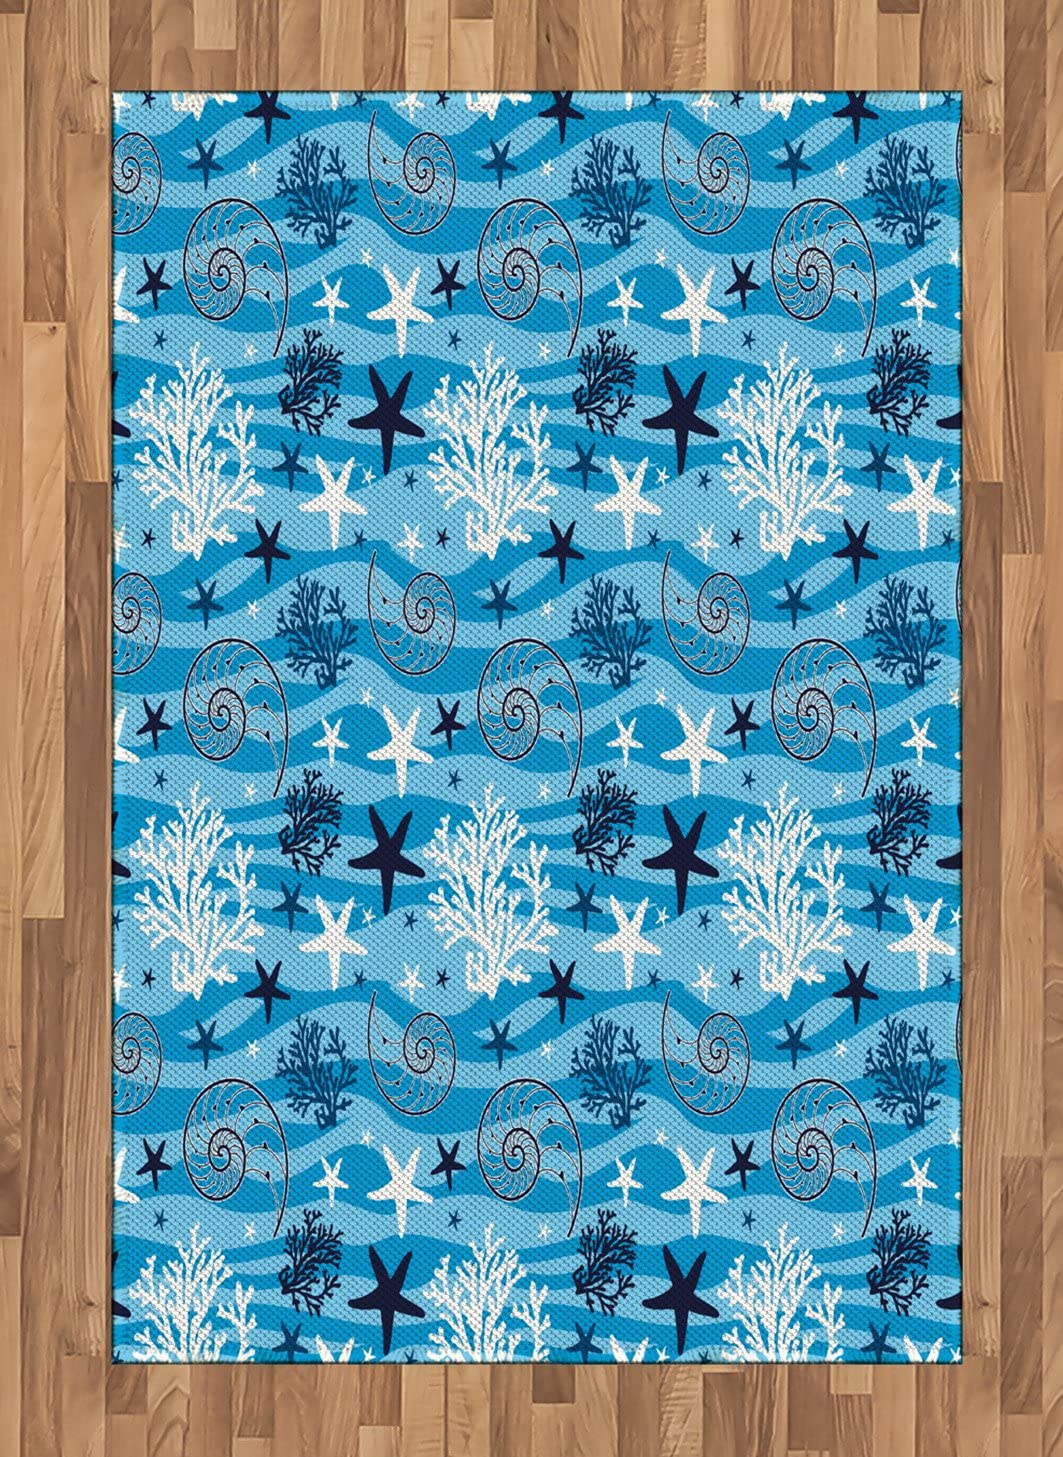 Ambesonne Sea Shells Area Rug, Abstract Horizontal Wavy Lines with Starfish Silhouettes and Scallops, Flat Woven Accent Rug for Living Room Bedroom Dining Room, 4' X 5.7', Blue Dark Blue White